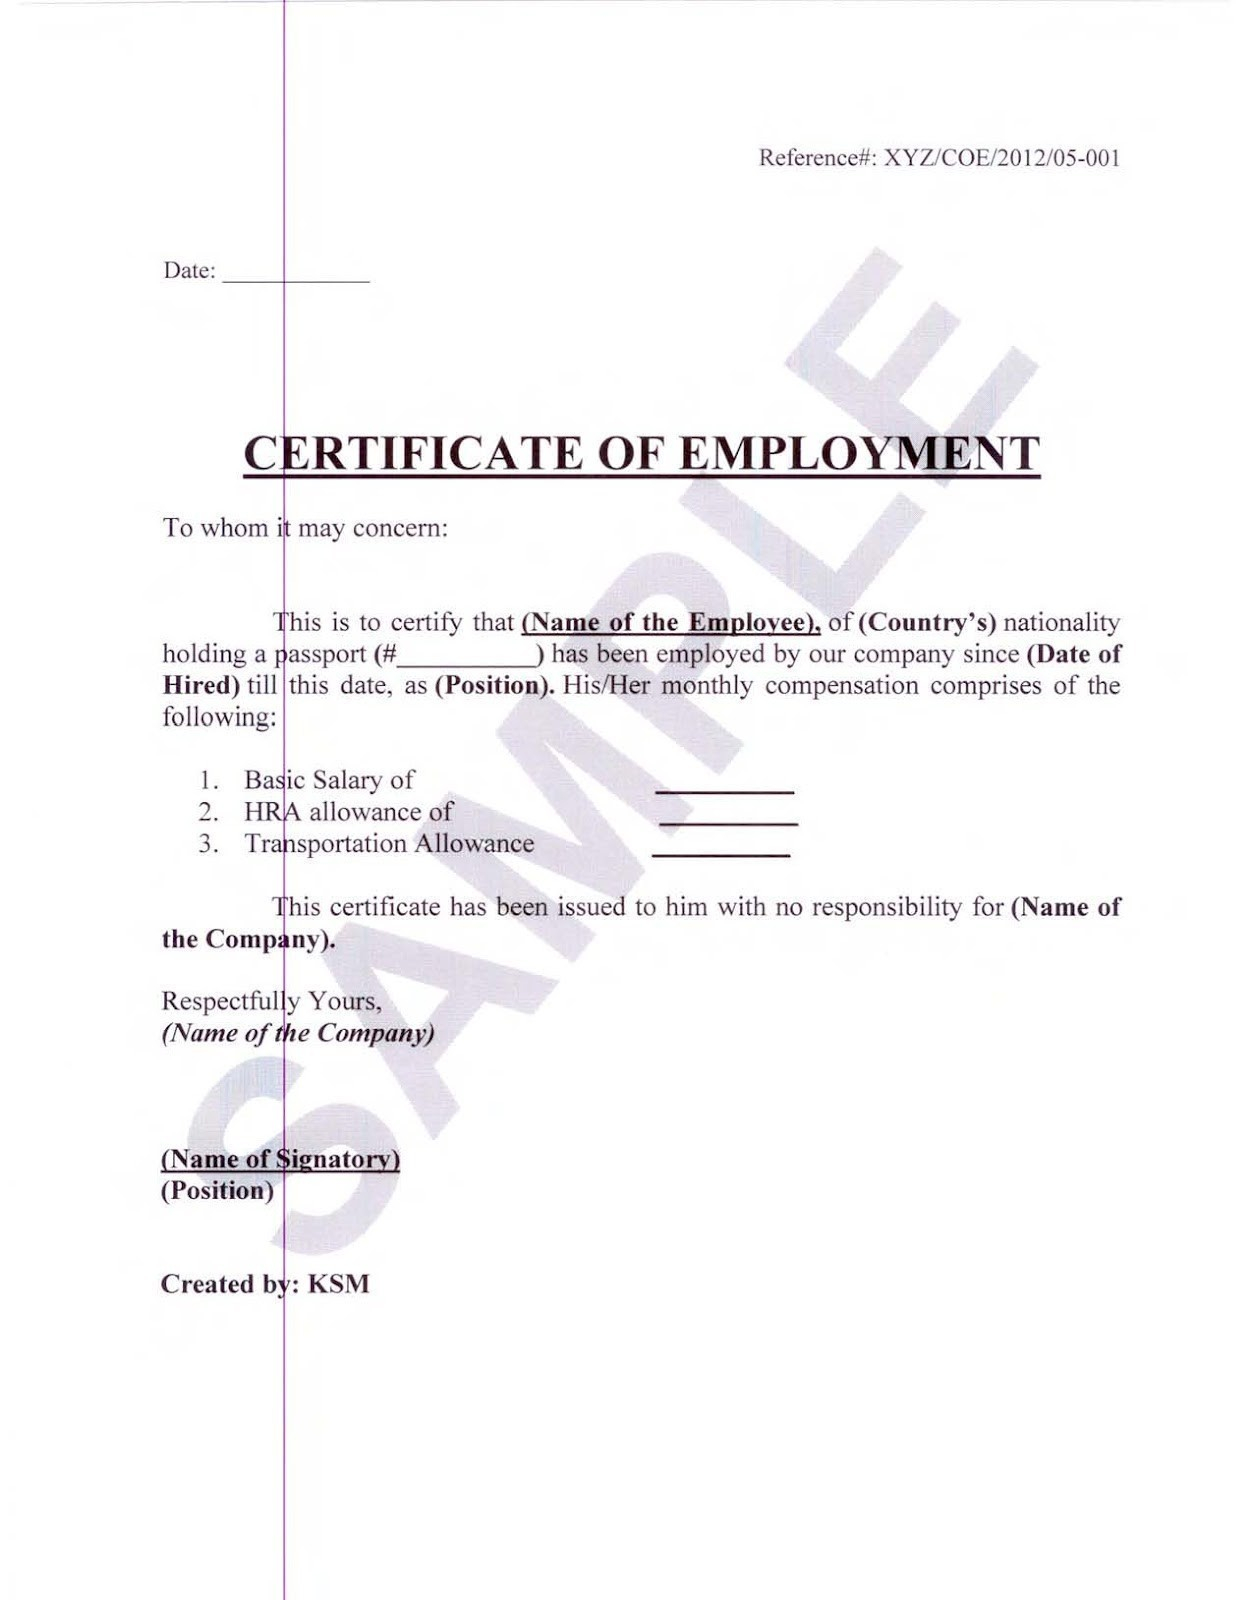 Certificate of employment sample letter for secretary